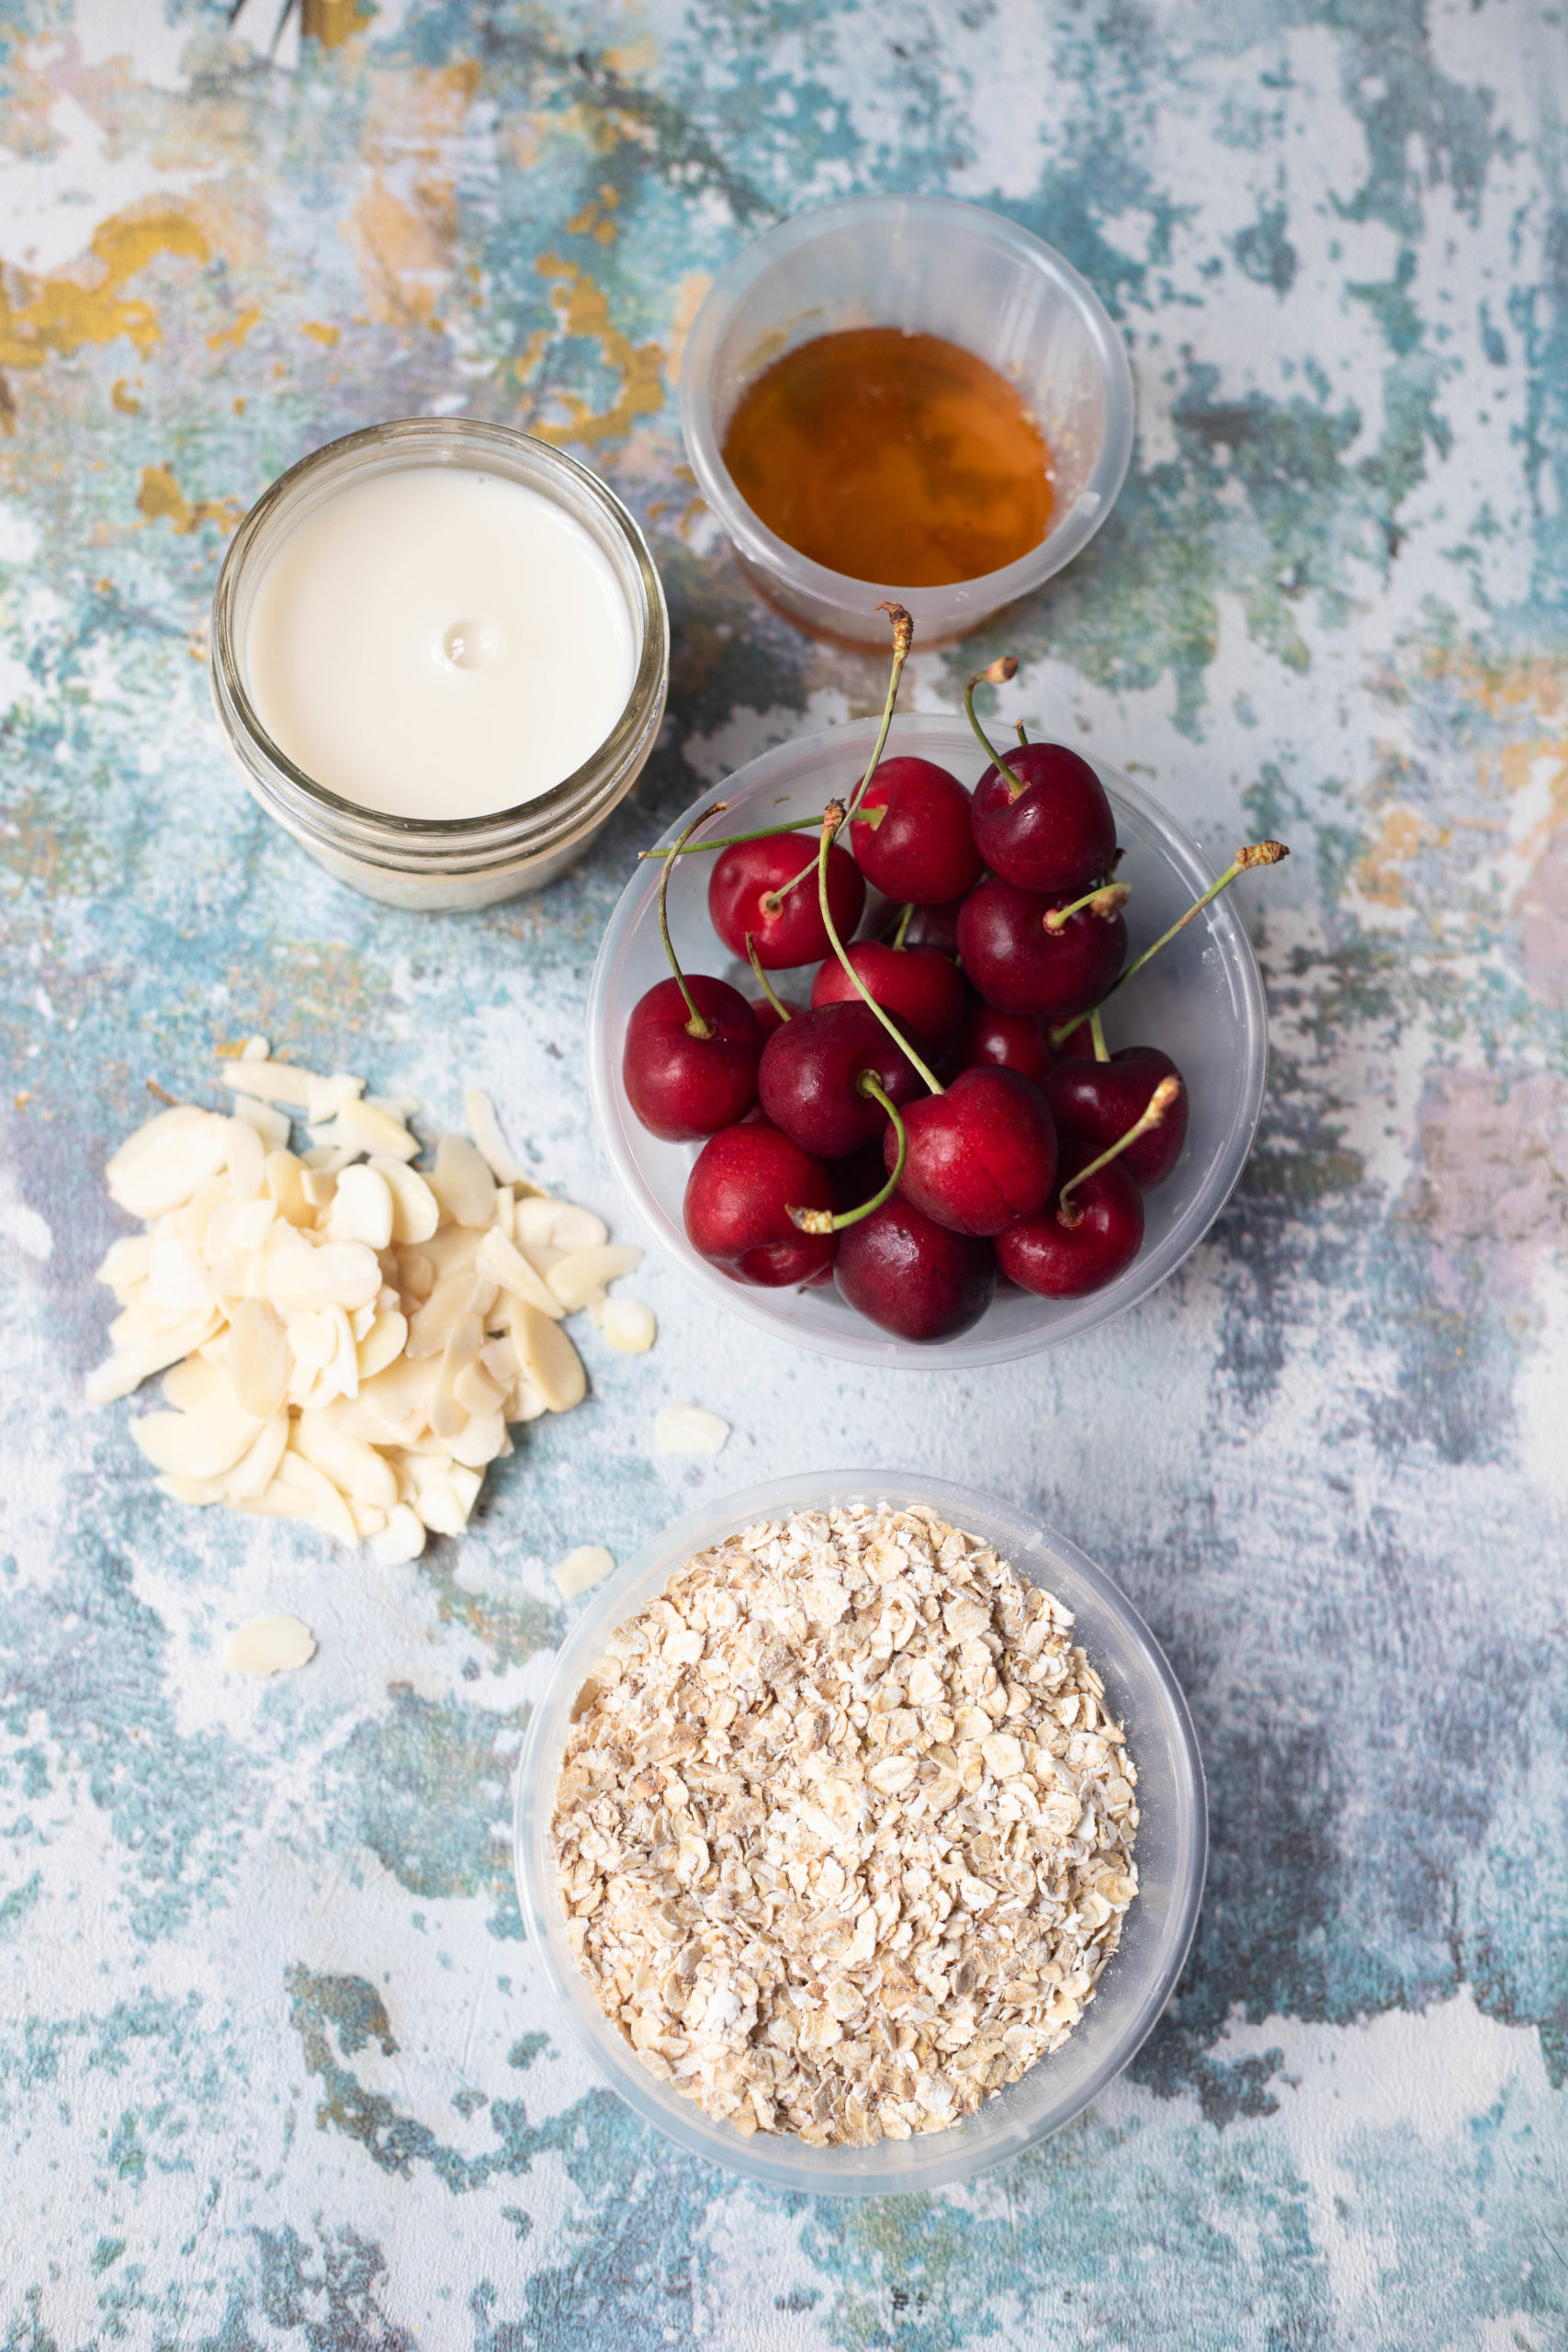 Ingredients for bakewell Cherry Oats muffins